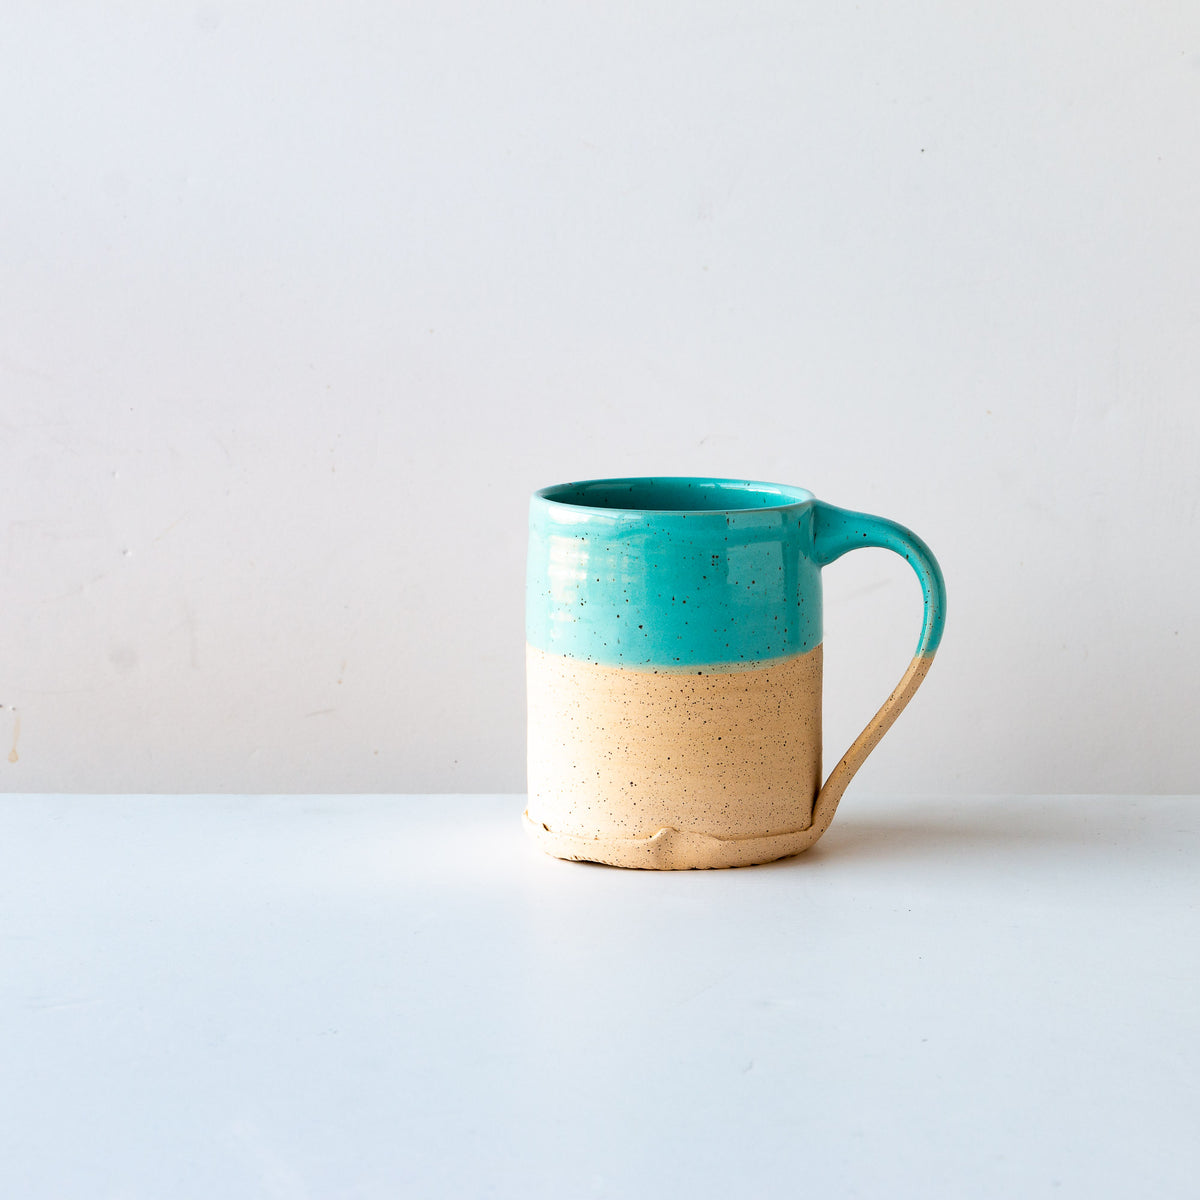 Turquoise Glaze - Handcrafted Speckled Stoneware Large Mug - Sold by Chic & Basta